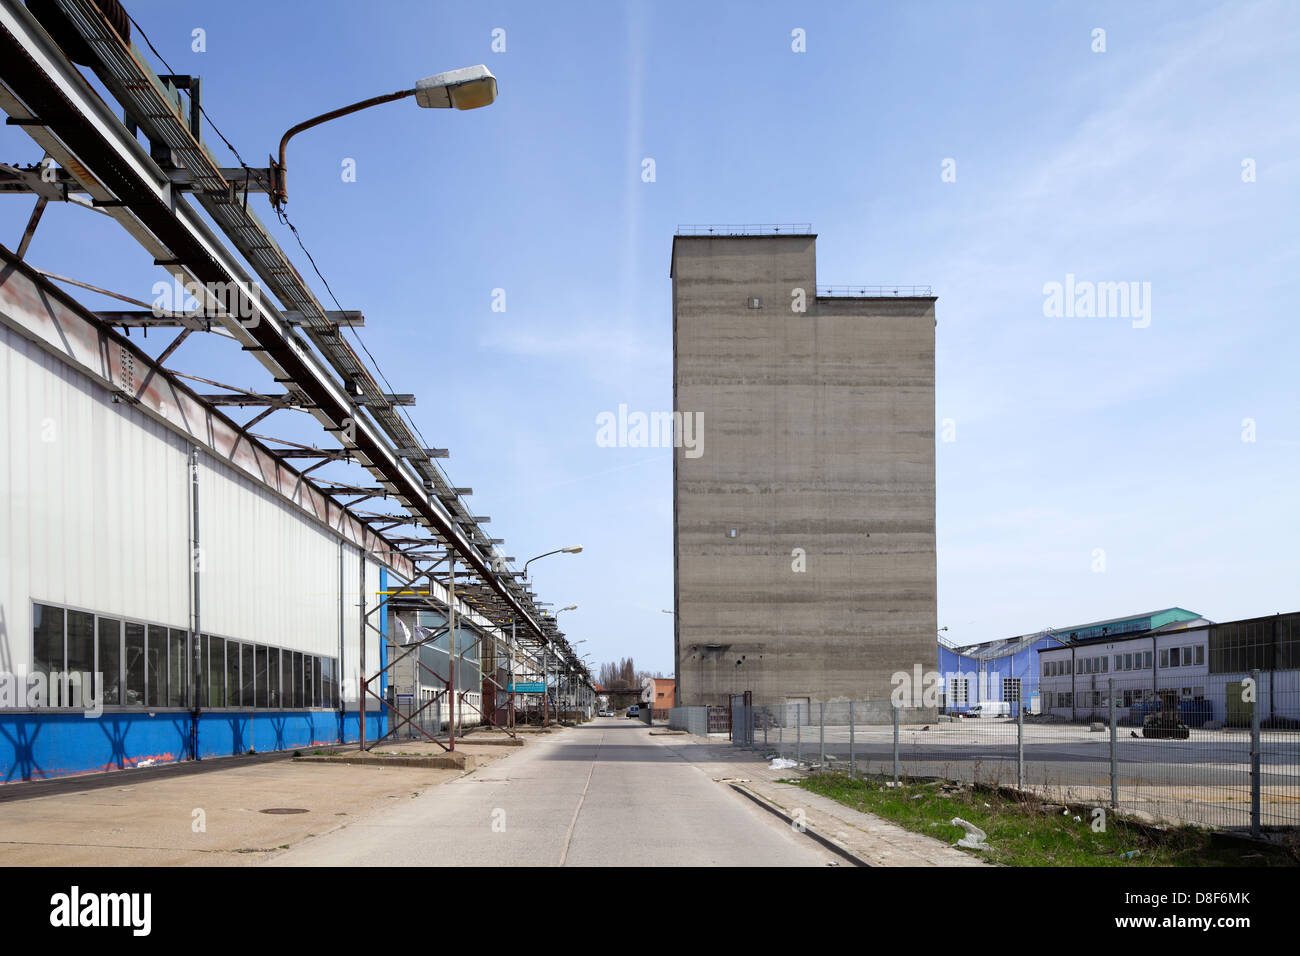 Berlin, Germany, partially disassembled factory buildings - Stock Image